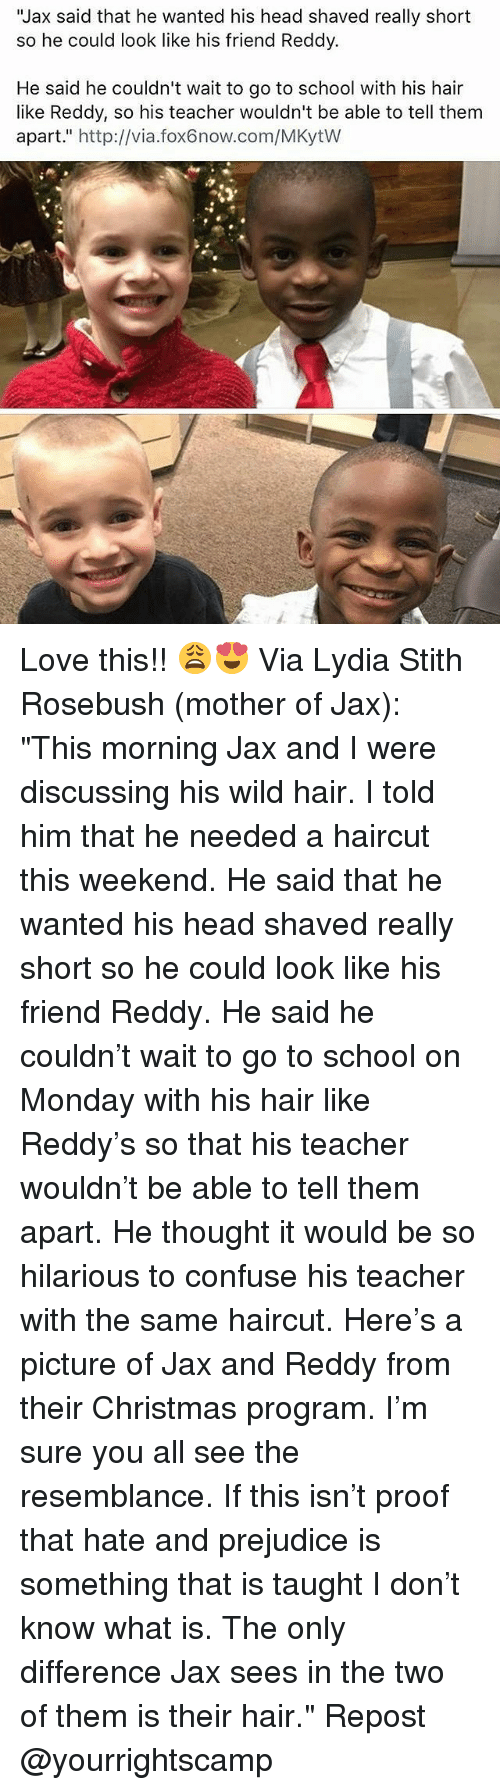 "Haircut, Memes, and Haircuts: ""Jax said that he wanted his head shaved really short  so he could look like his friend Reddy.  He said he couldn't wait to go to school with his hair  like Reddy, so his teacher wouldn't be able to tell them  apart,"" http://via.fox6now.com/MKytW Love this!! 😩😍 Via Lydia Stith Rosebush (mother of Jax): ""This morning Jax and I were discussing his wild hair. I told him that he needed a haircut this weekend. He said that he wanted his head shaved really short so he could look like his friend Reddy. He said he couldn't wait to go to school on Monday with his hair like Reddy's so that his teacher wouldn't be able to tell them apart. He thought it would be so hilarious to confuse his teacher with the same haircut. Here's a picture of Jax and Reddy from their Christmas program. I'm sure you all see the resemblance. If this isn't proof that hate and prejudice is something that is taught I don't know what is. The only difference Jax sees in the two of them is their hair."" Repost @yourrightscamp"